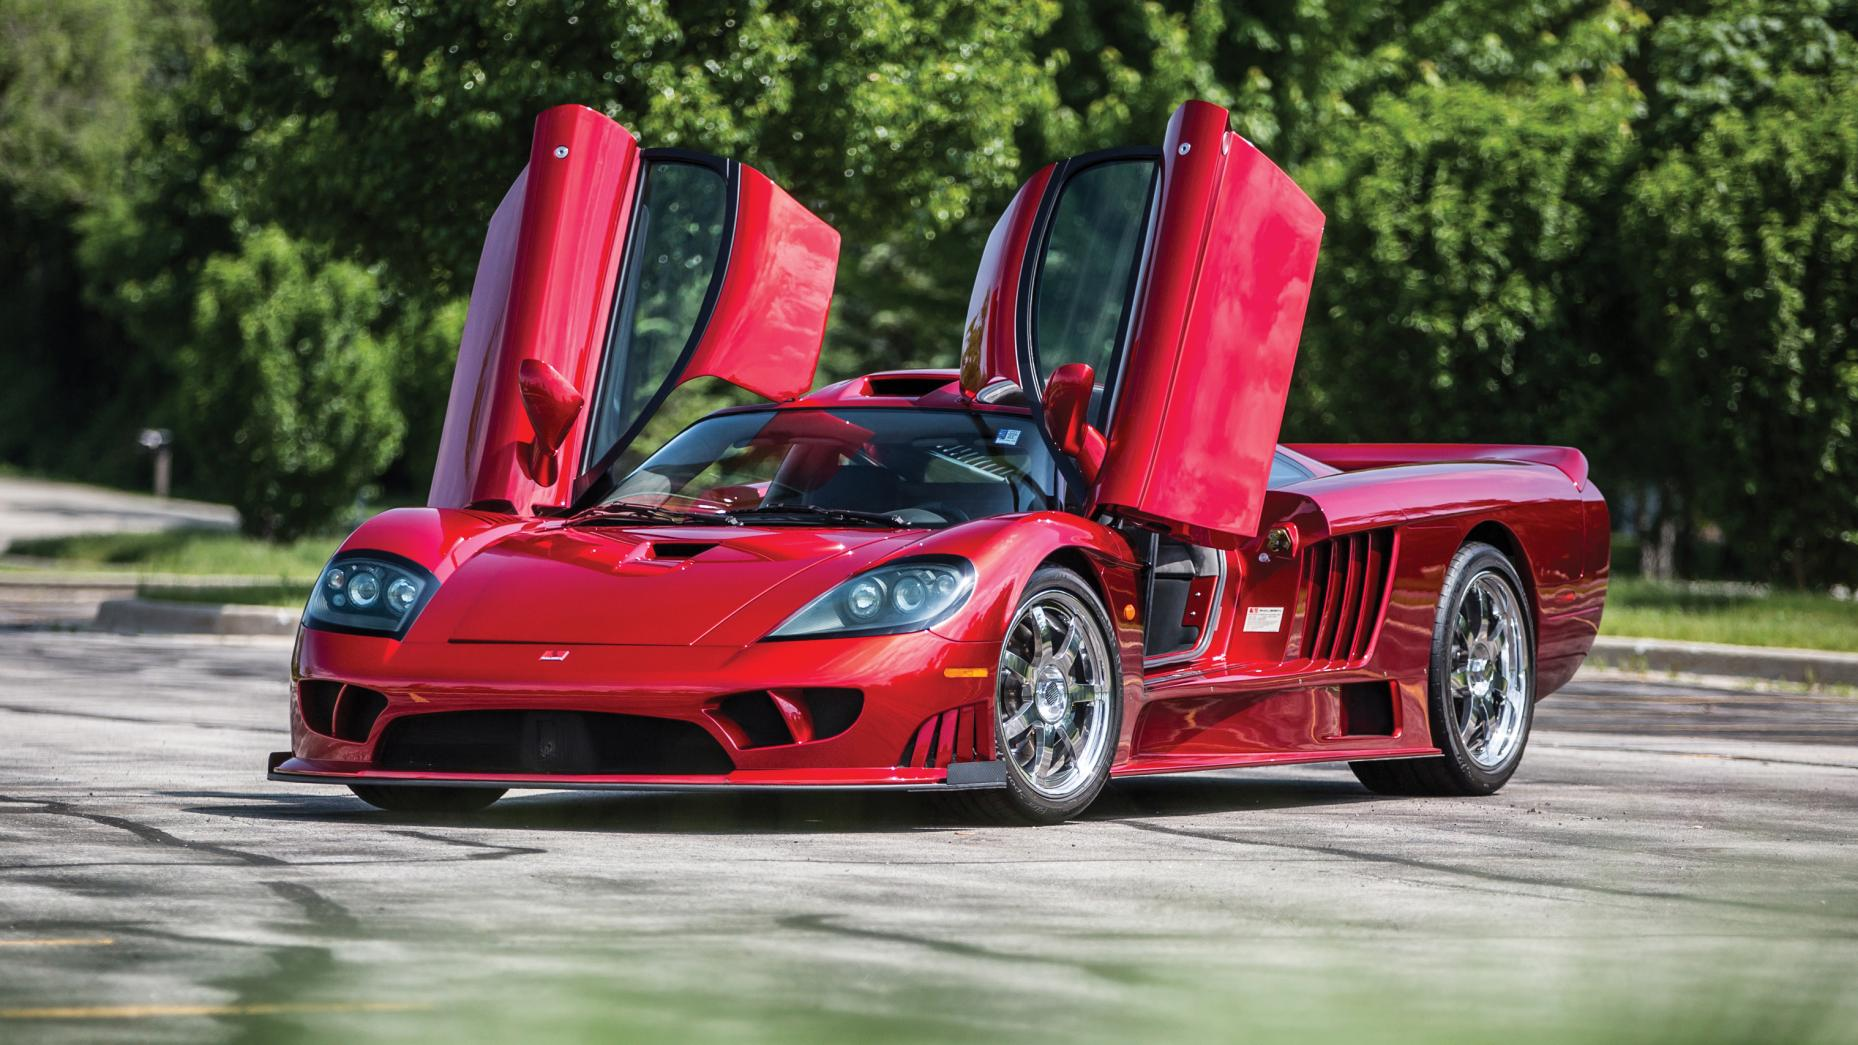 Rare 248mph Saleen S7 TT heads to auction - Oracle Finance